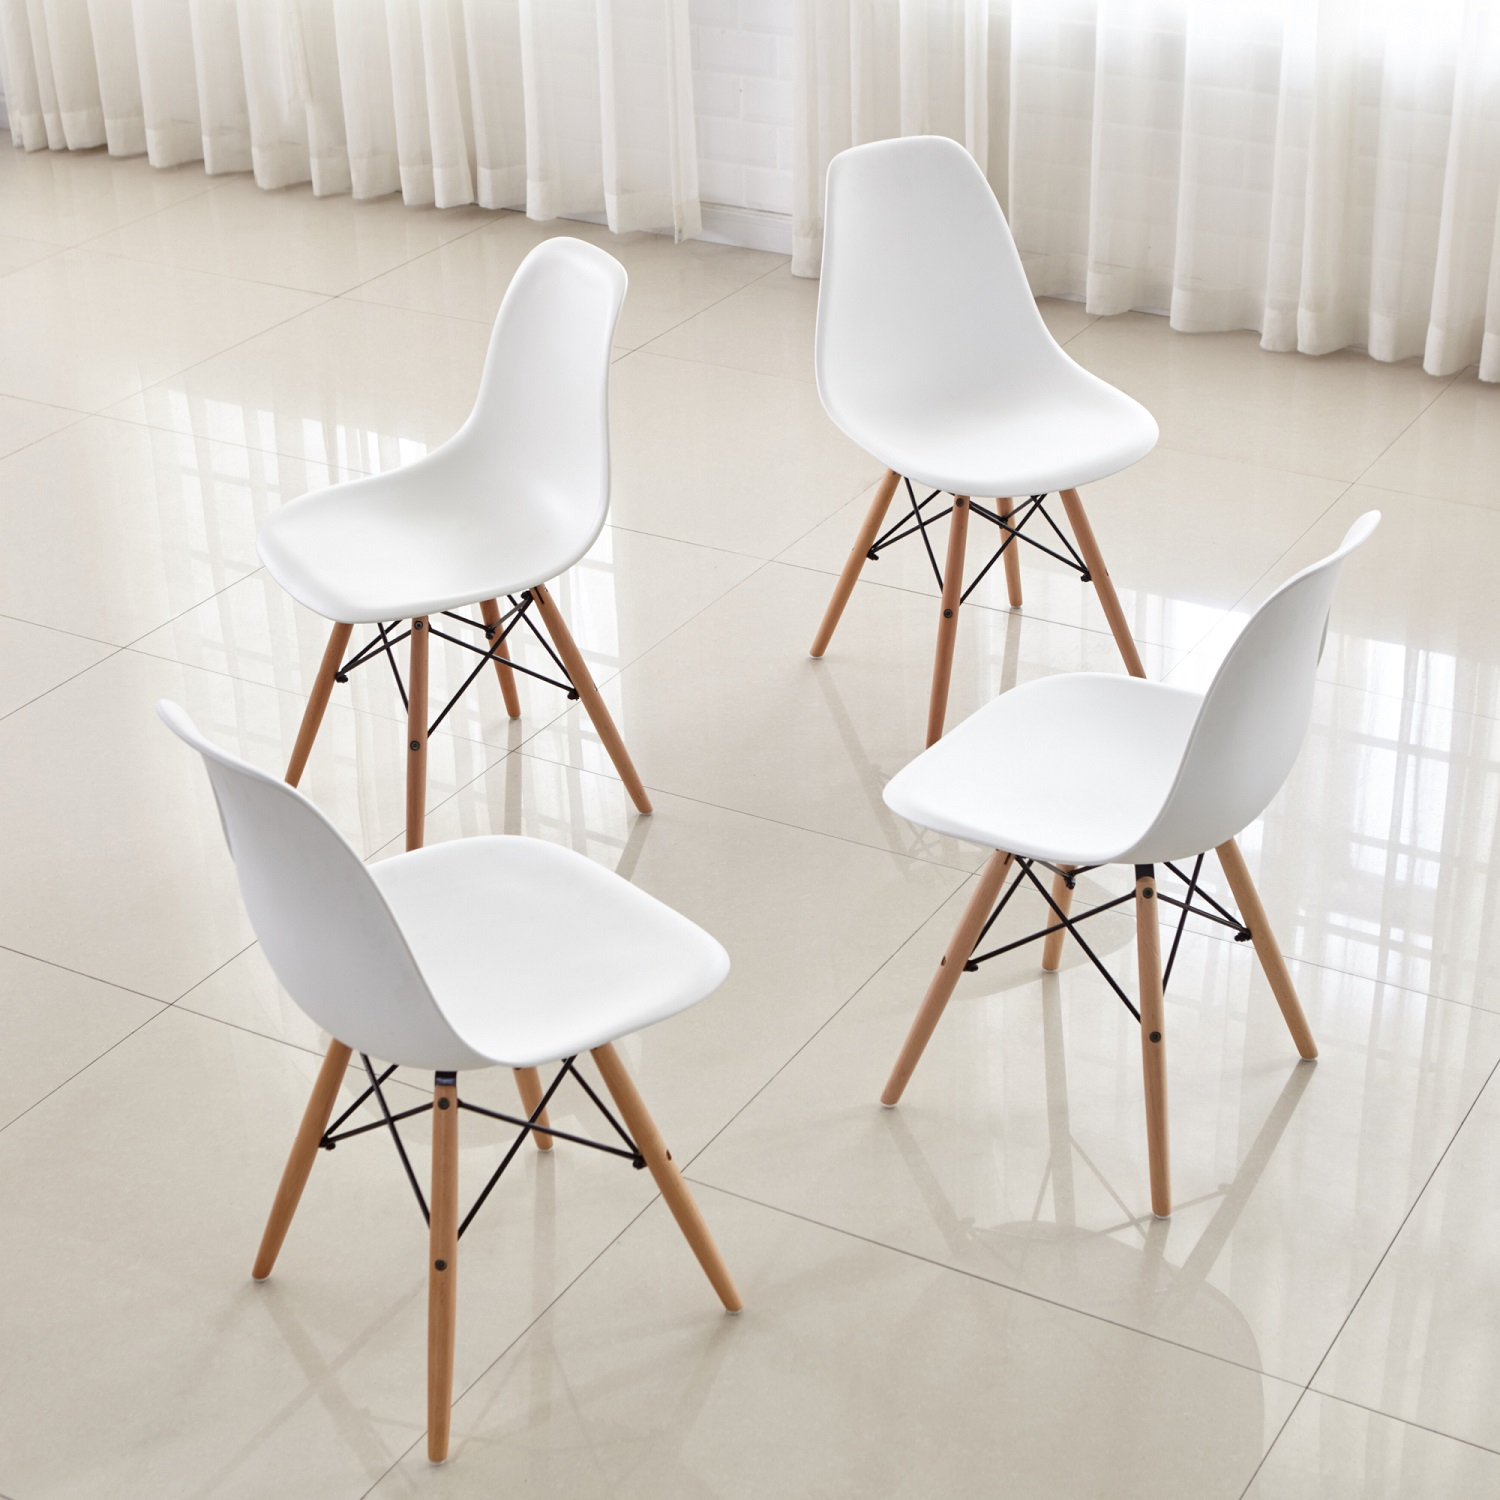 Details about Set Of 4 Modern Kitchen Dining Chair White PP Side Lounge  Chair With Wood Legs